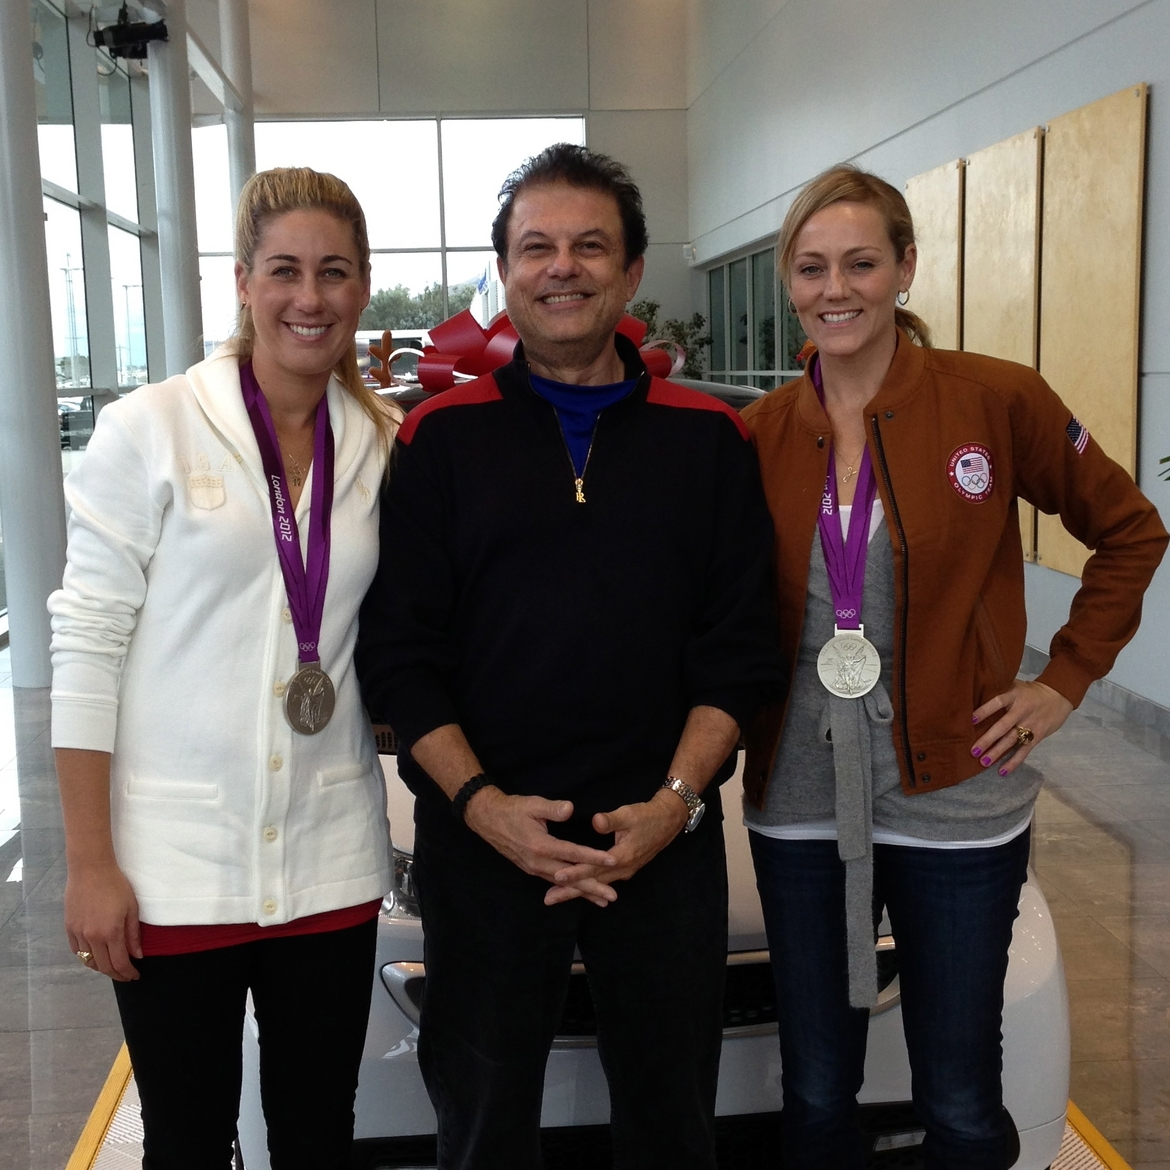 Joe Ippolito with Jennifer Kessey and April Ross  (London Silver medalists volleyball)